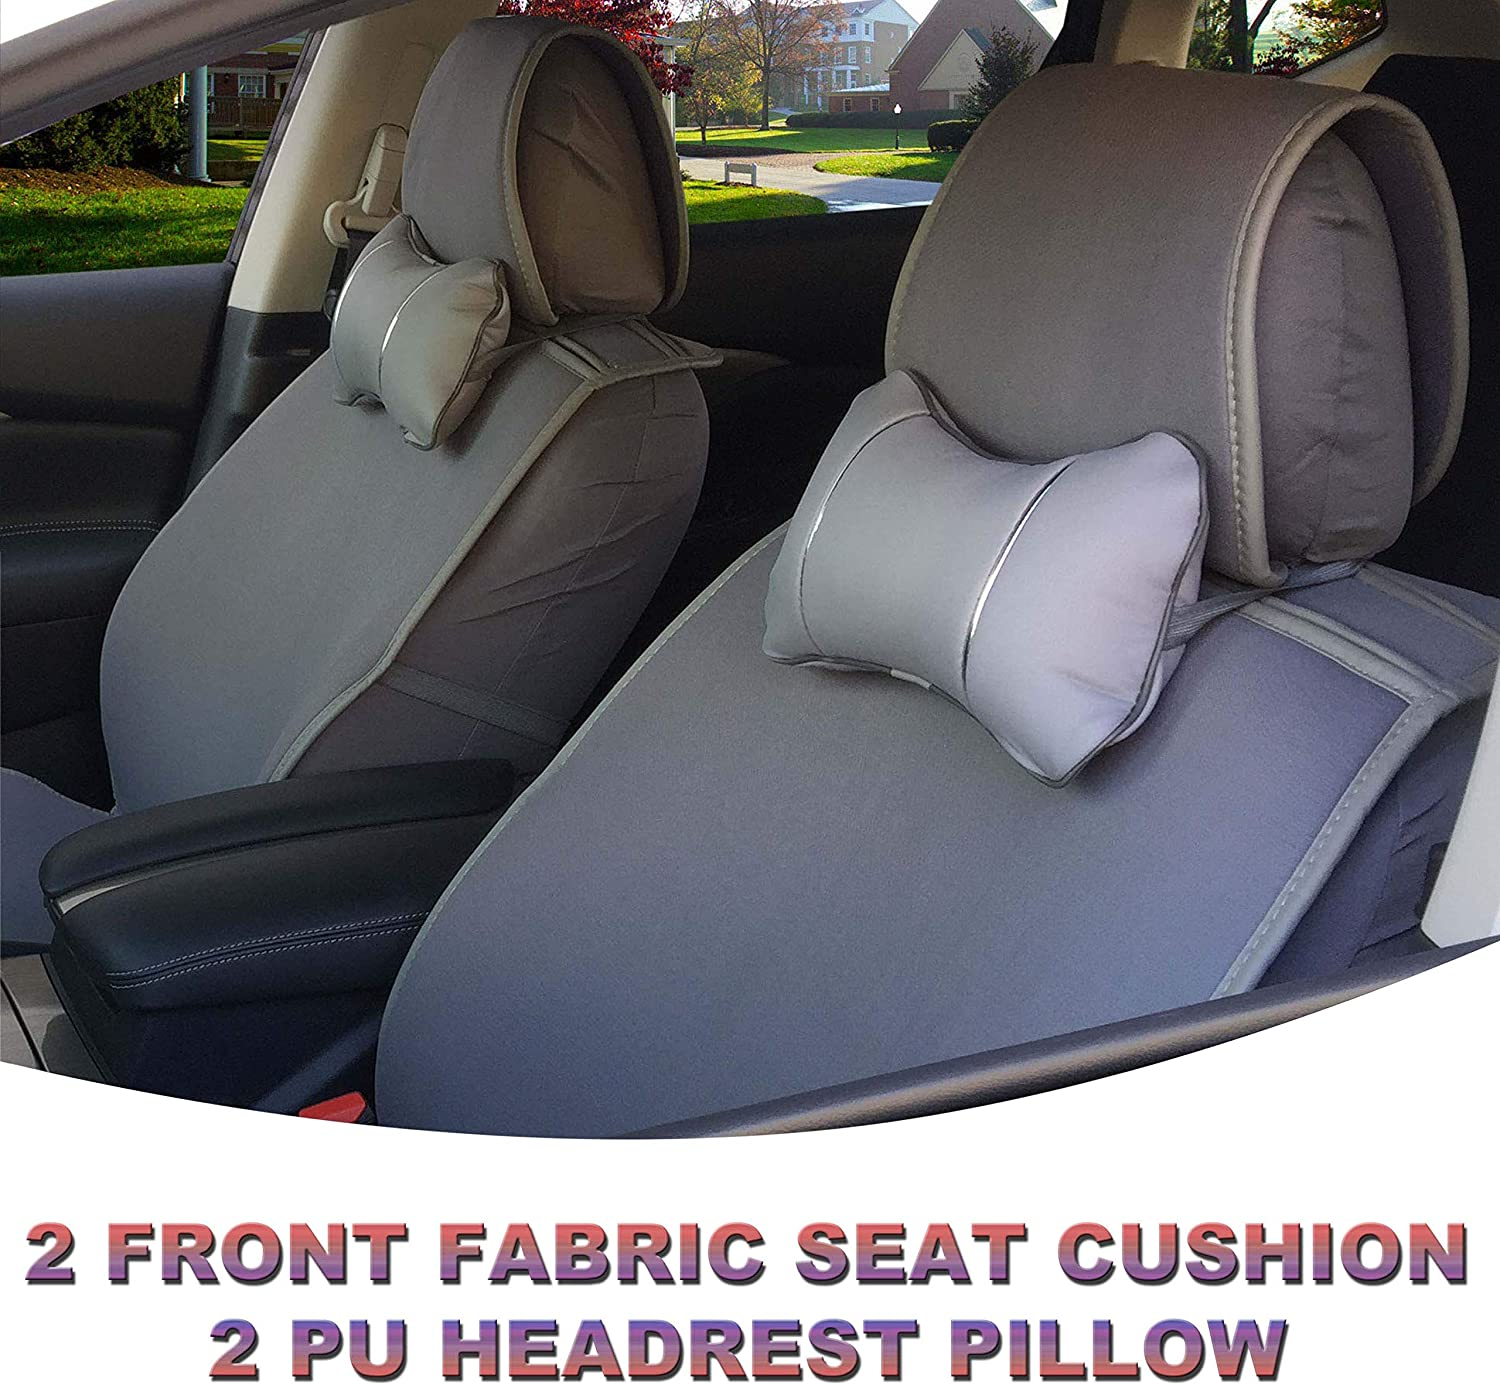 Deluxe Auto Car Front Seat Cover Cushion PU Leather Black//Red w//Pillows Size M